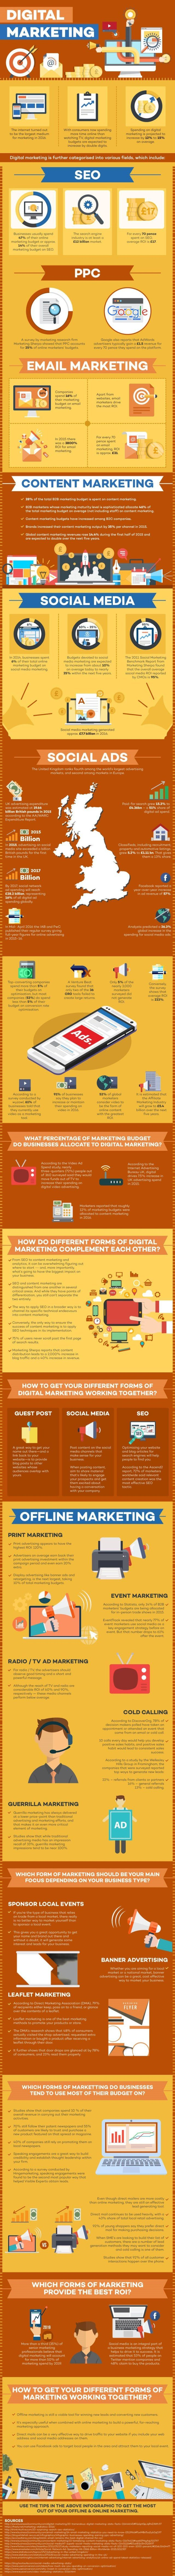 Take a look at this online vs offline marketing-infographic for details on a variety of marketing channels, as well as the support statistics for each.